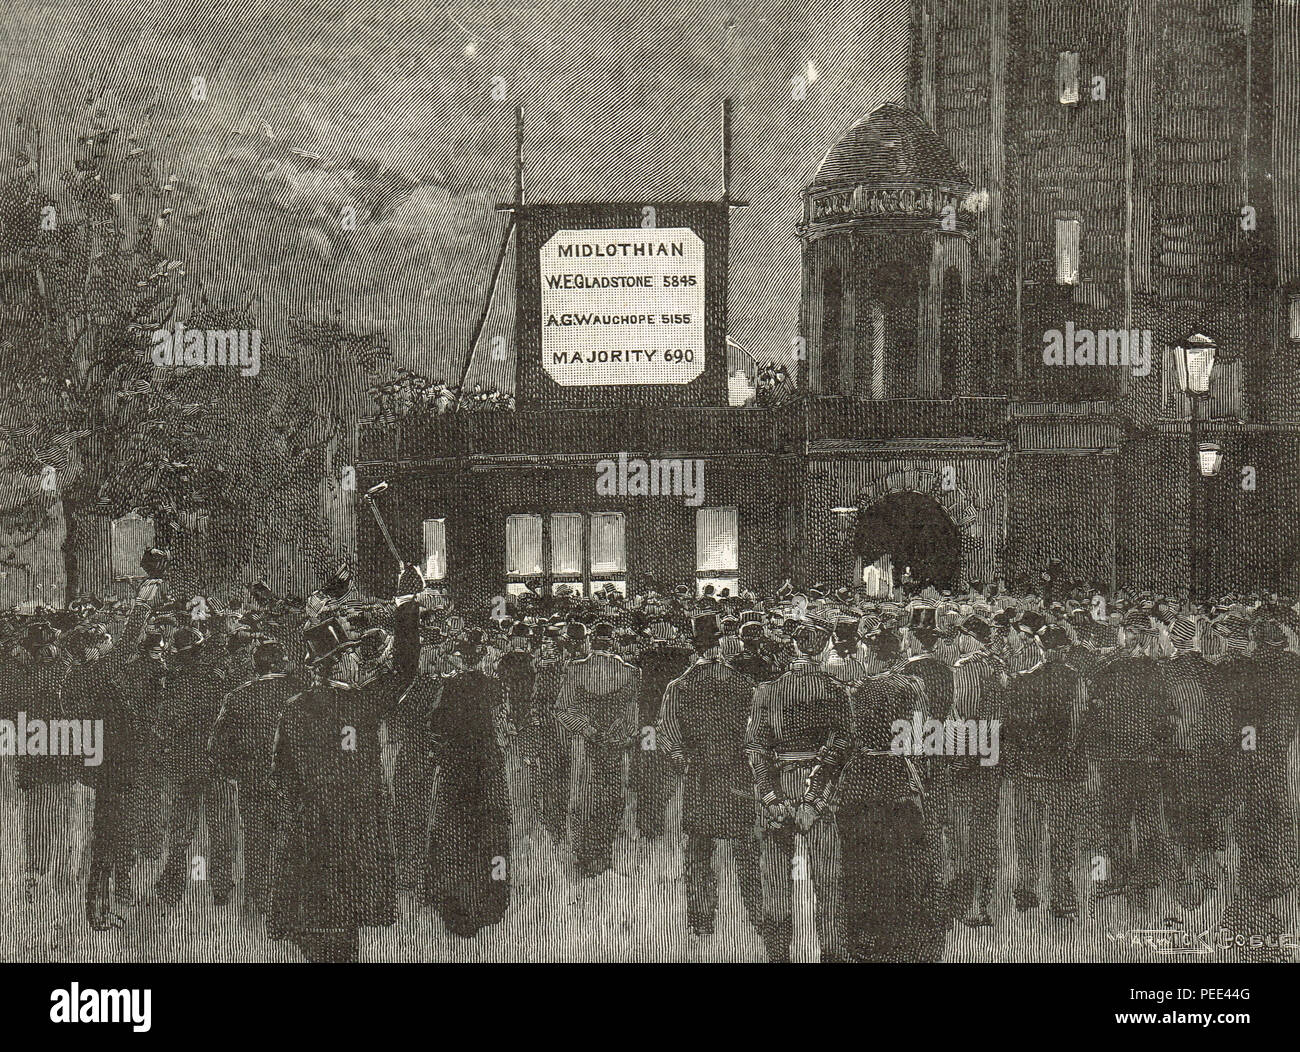 The results of Gladstone's Midlothian constituency displayed at the National Liberal club in London, General Election of 1892 - Stock Image